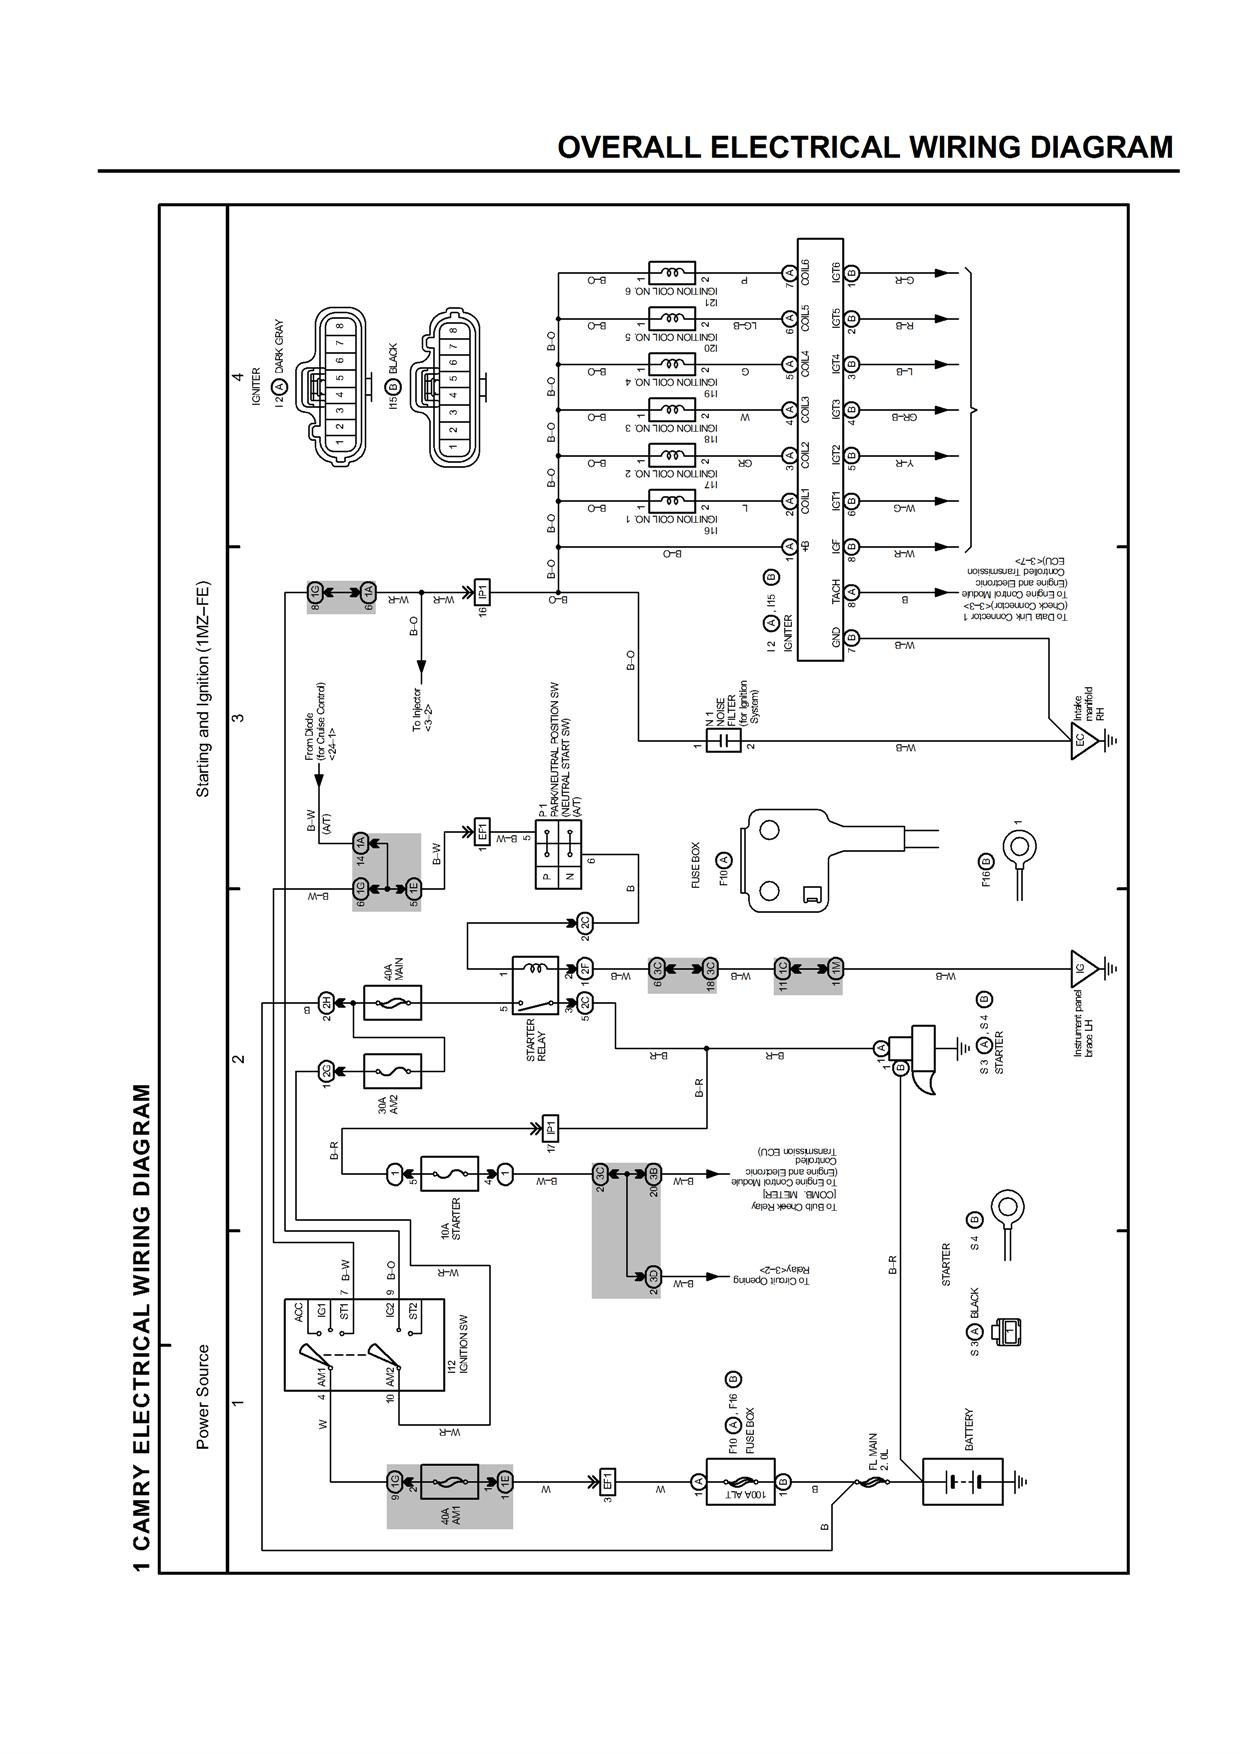 91 Toyota Camry Fuse Box Diagram Wiring Library 1991 Location Image Details